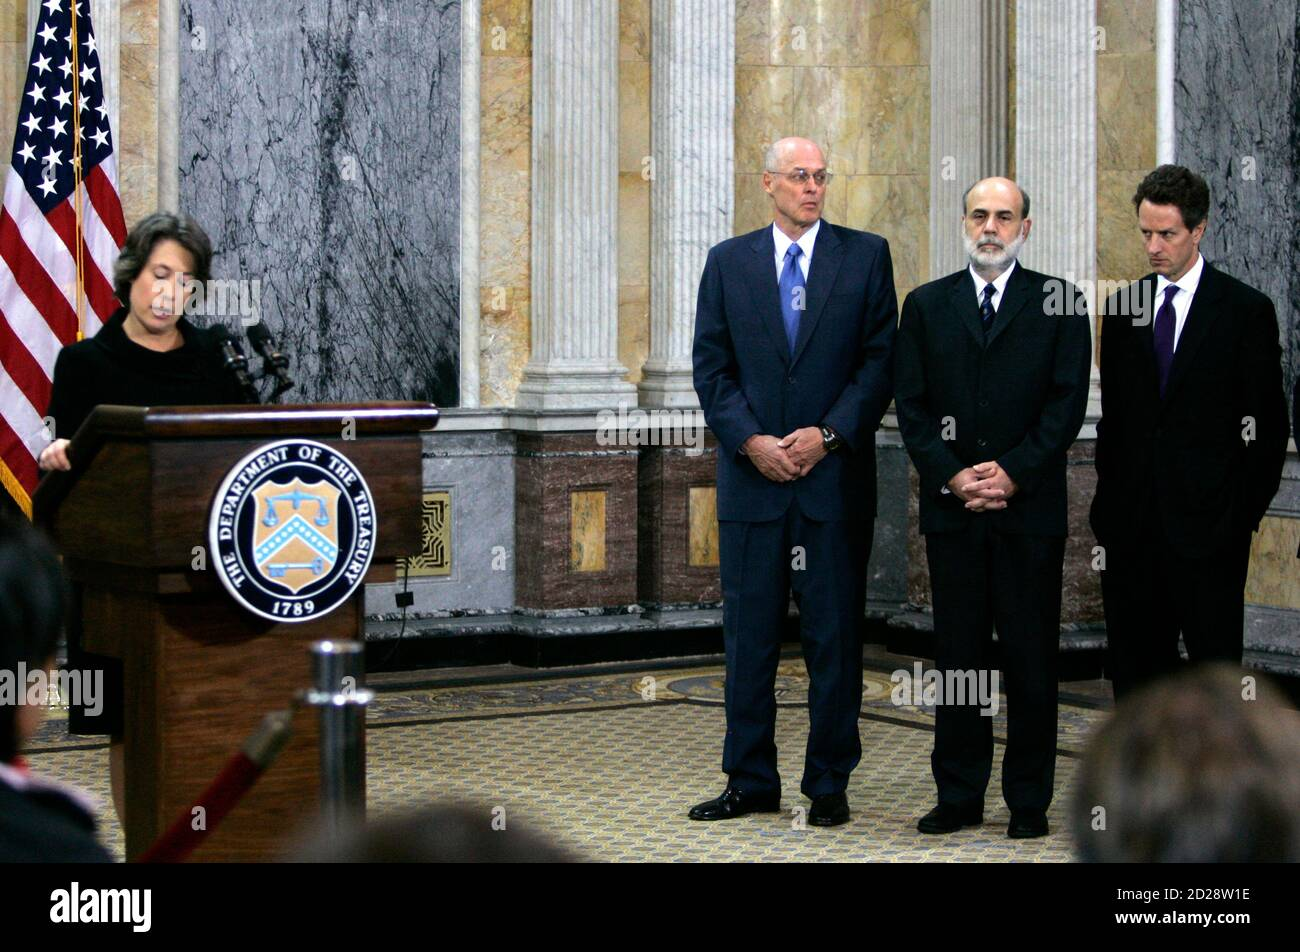 New York Federal Reserve President Timothy Geithner (R) looks on as FDIC Chairman Sheila Bair speaks during a news conference with U.S. Treasury Secretary Henry Paulson (3rd R) and Federal Reserve Chairman Ben Bernanke (2nd-R) in attendance at the Treasury Department Cash Room in Washington, October 14, 2008. Geithner is expected to be nominated to the post of U.S. Treasury secretary in the administration of U.S. President-elect Barack Obama, NBC News reported on November 21, 2008.        REUTERS/Hyungwon Kang/Files          (UNITED STATES) Stock Photo